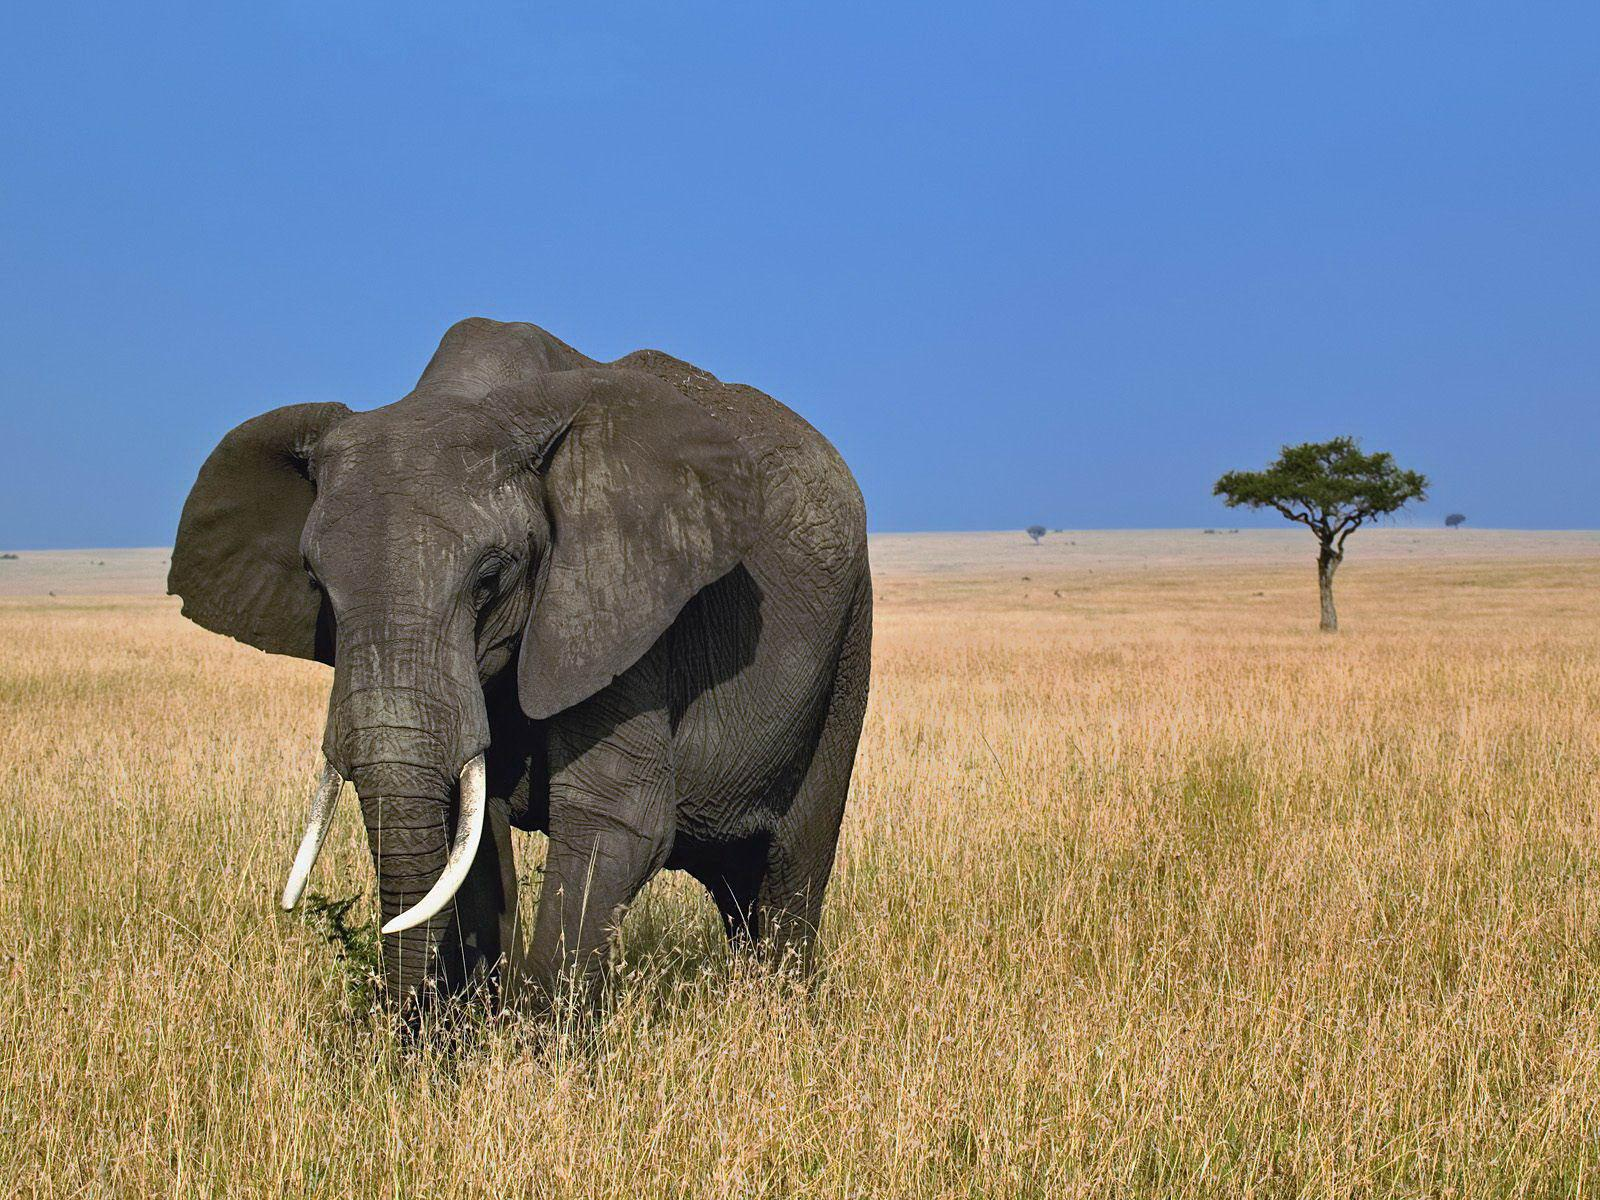 Beautiful Pictures Of Elephant In Hd: African Elephant Latest Hd Wallpapers/Images 2013